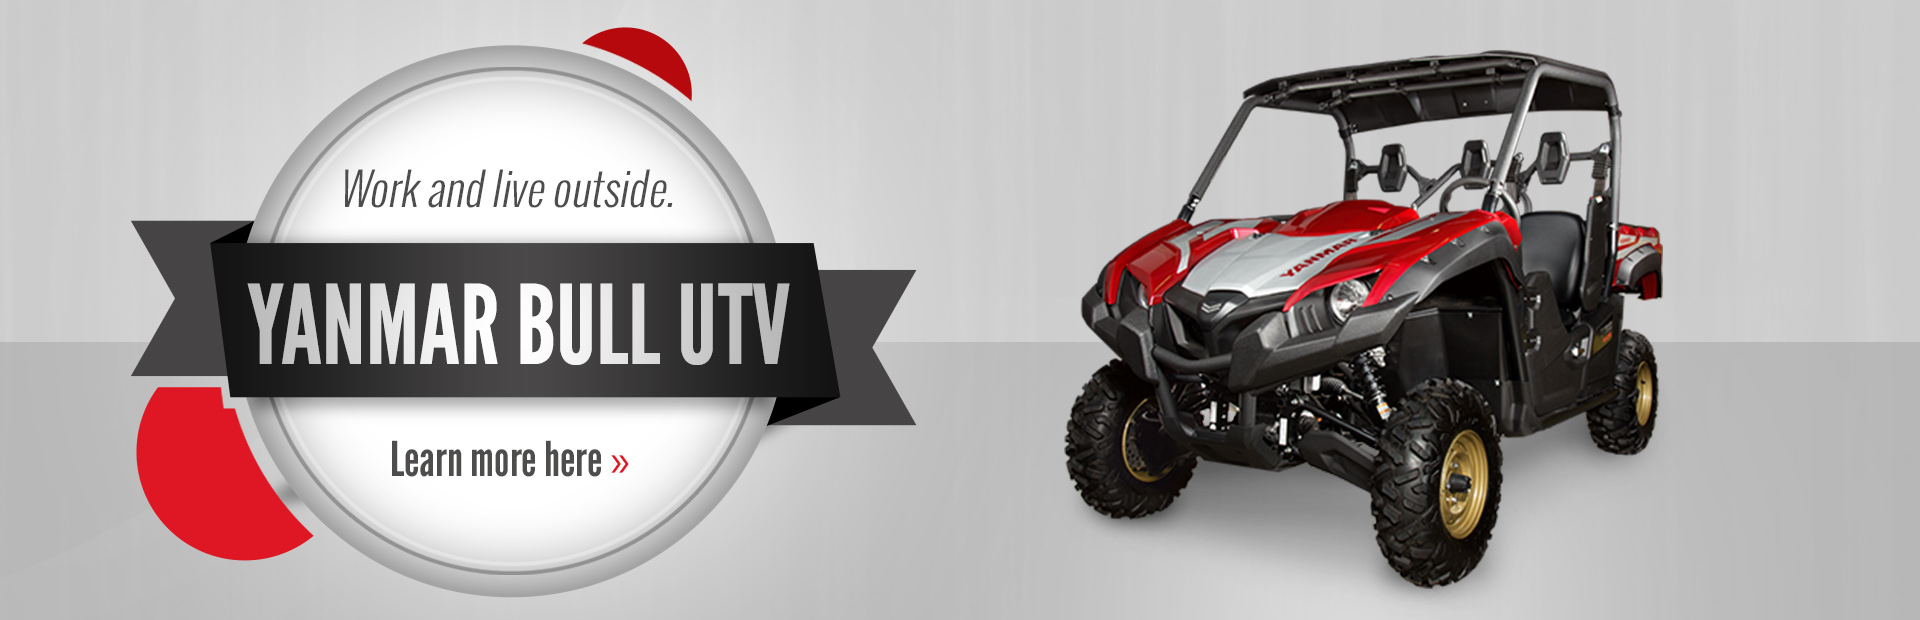 Yanmar Bull UTV: Click here to see the models.